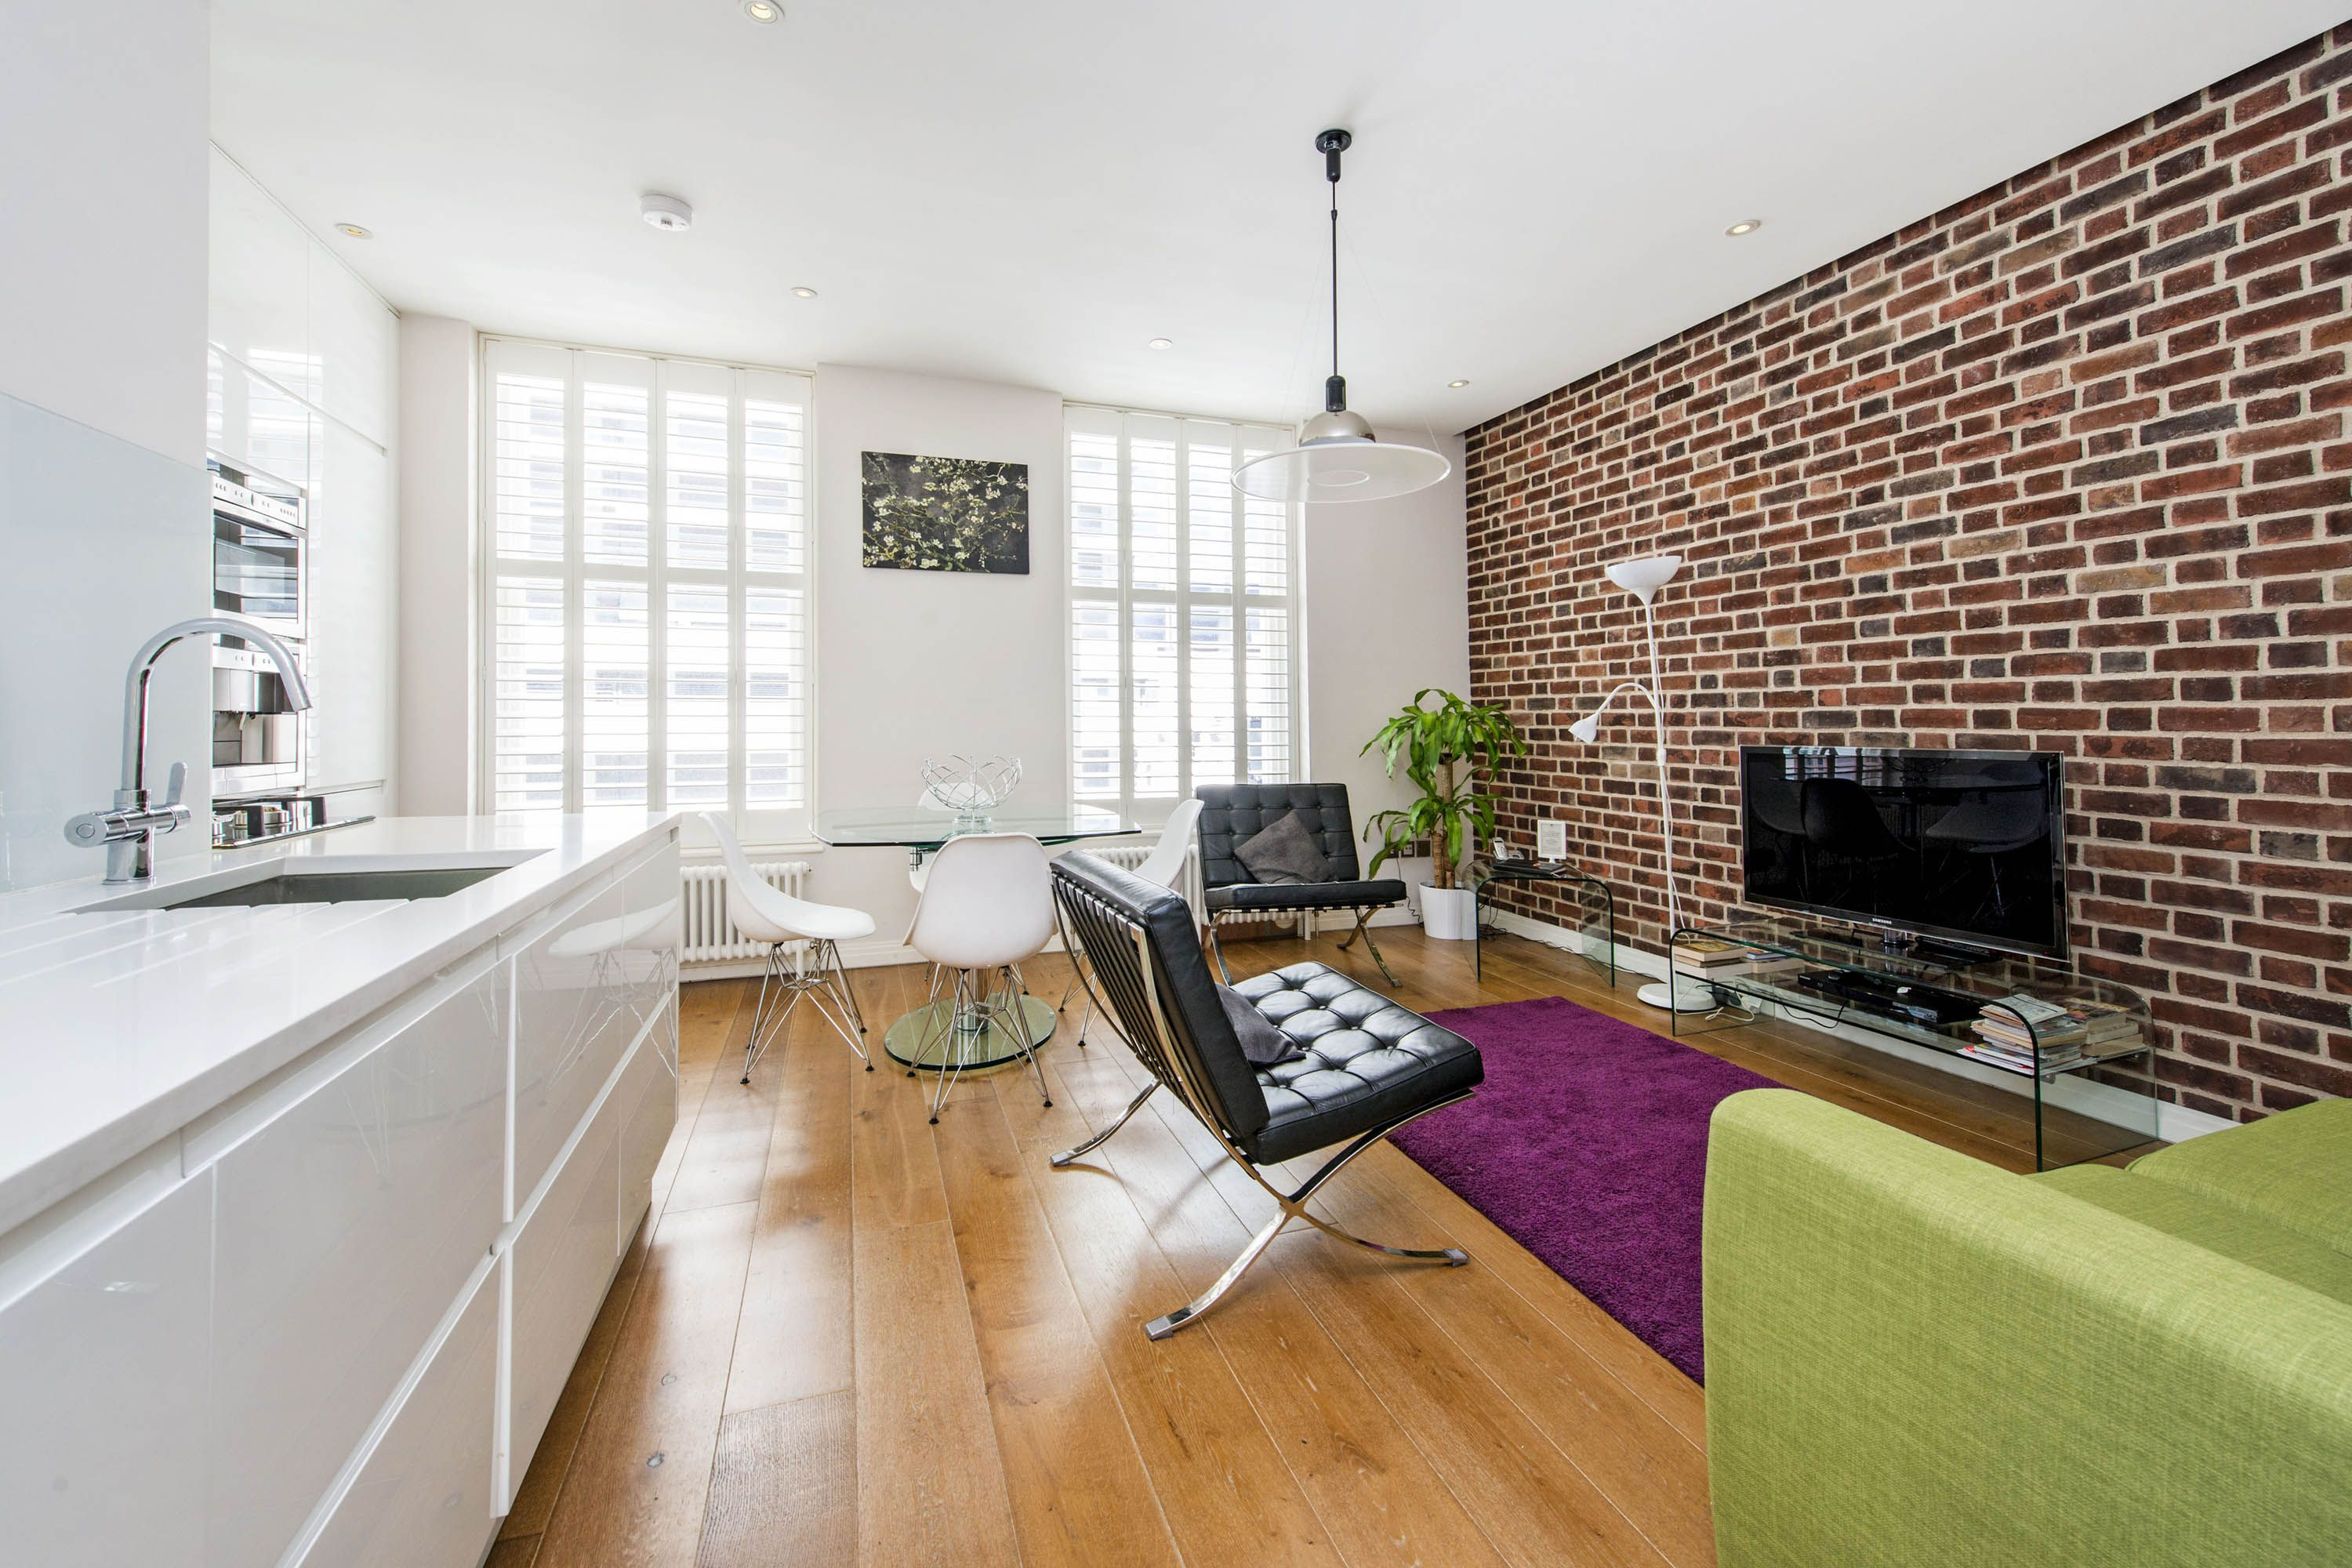 2-26 Drury Lane 2 bedroom 2 bath, For theater and all the ...